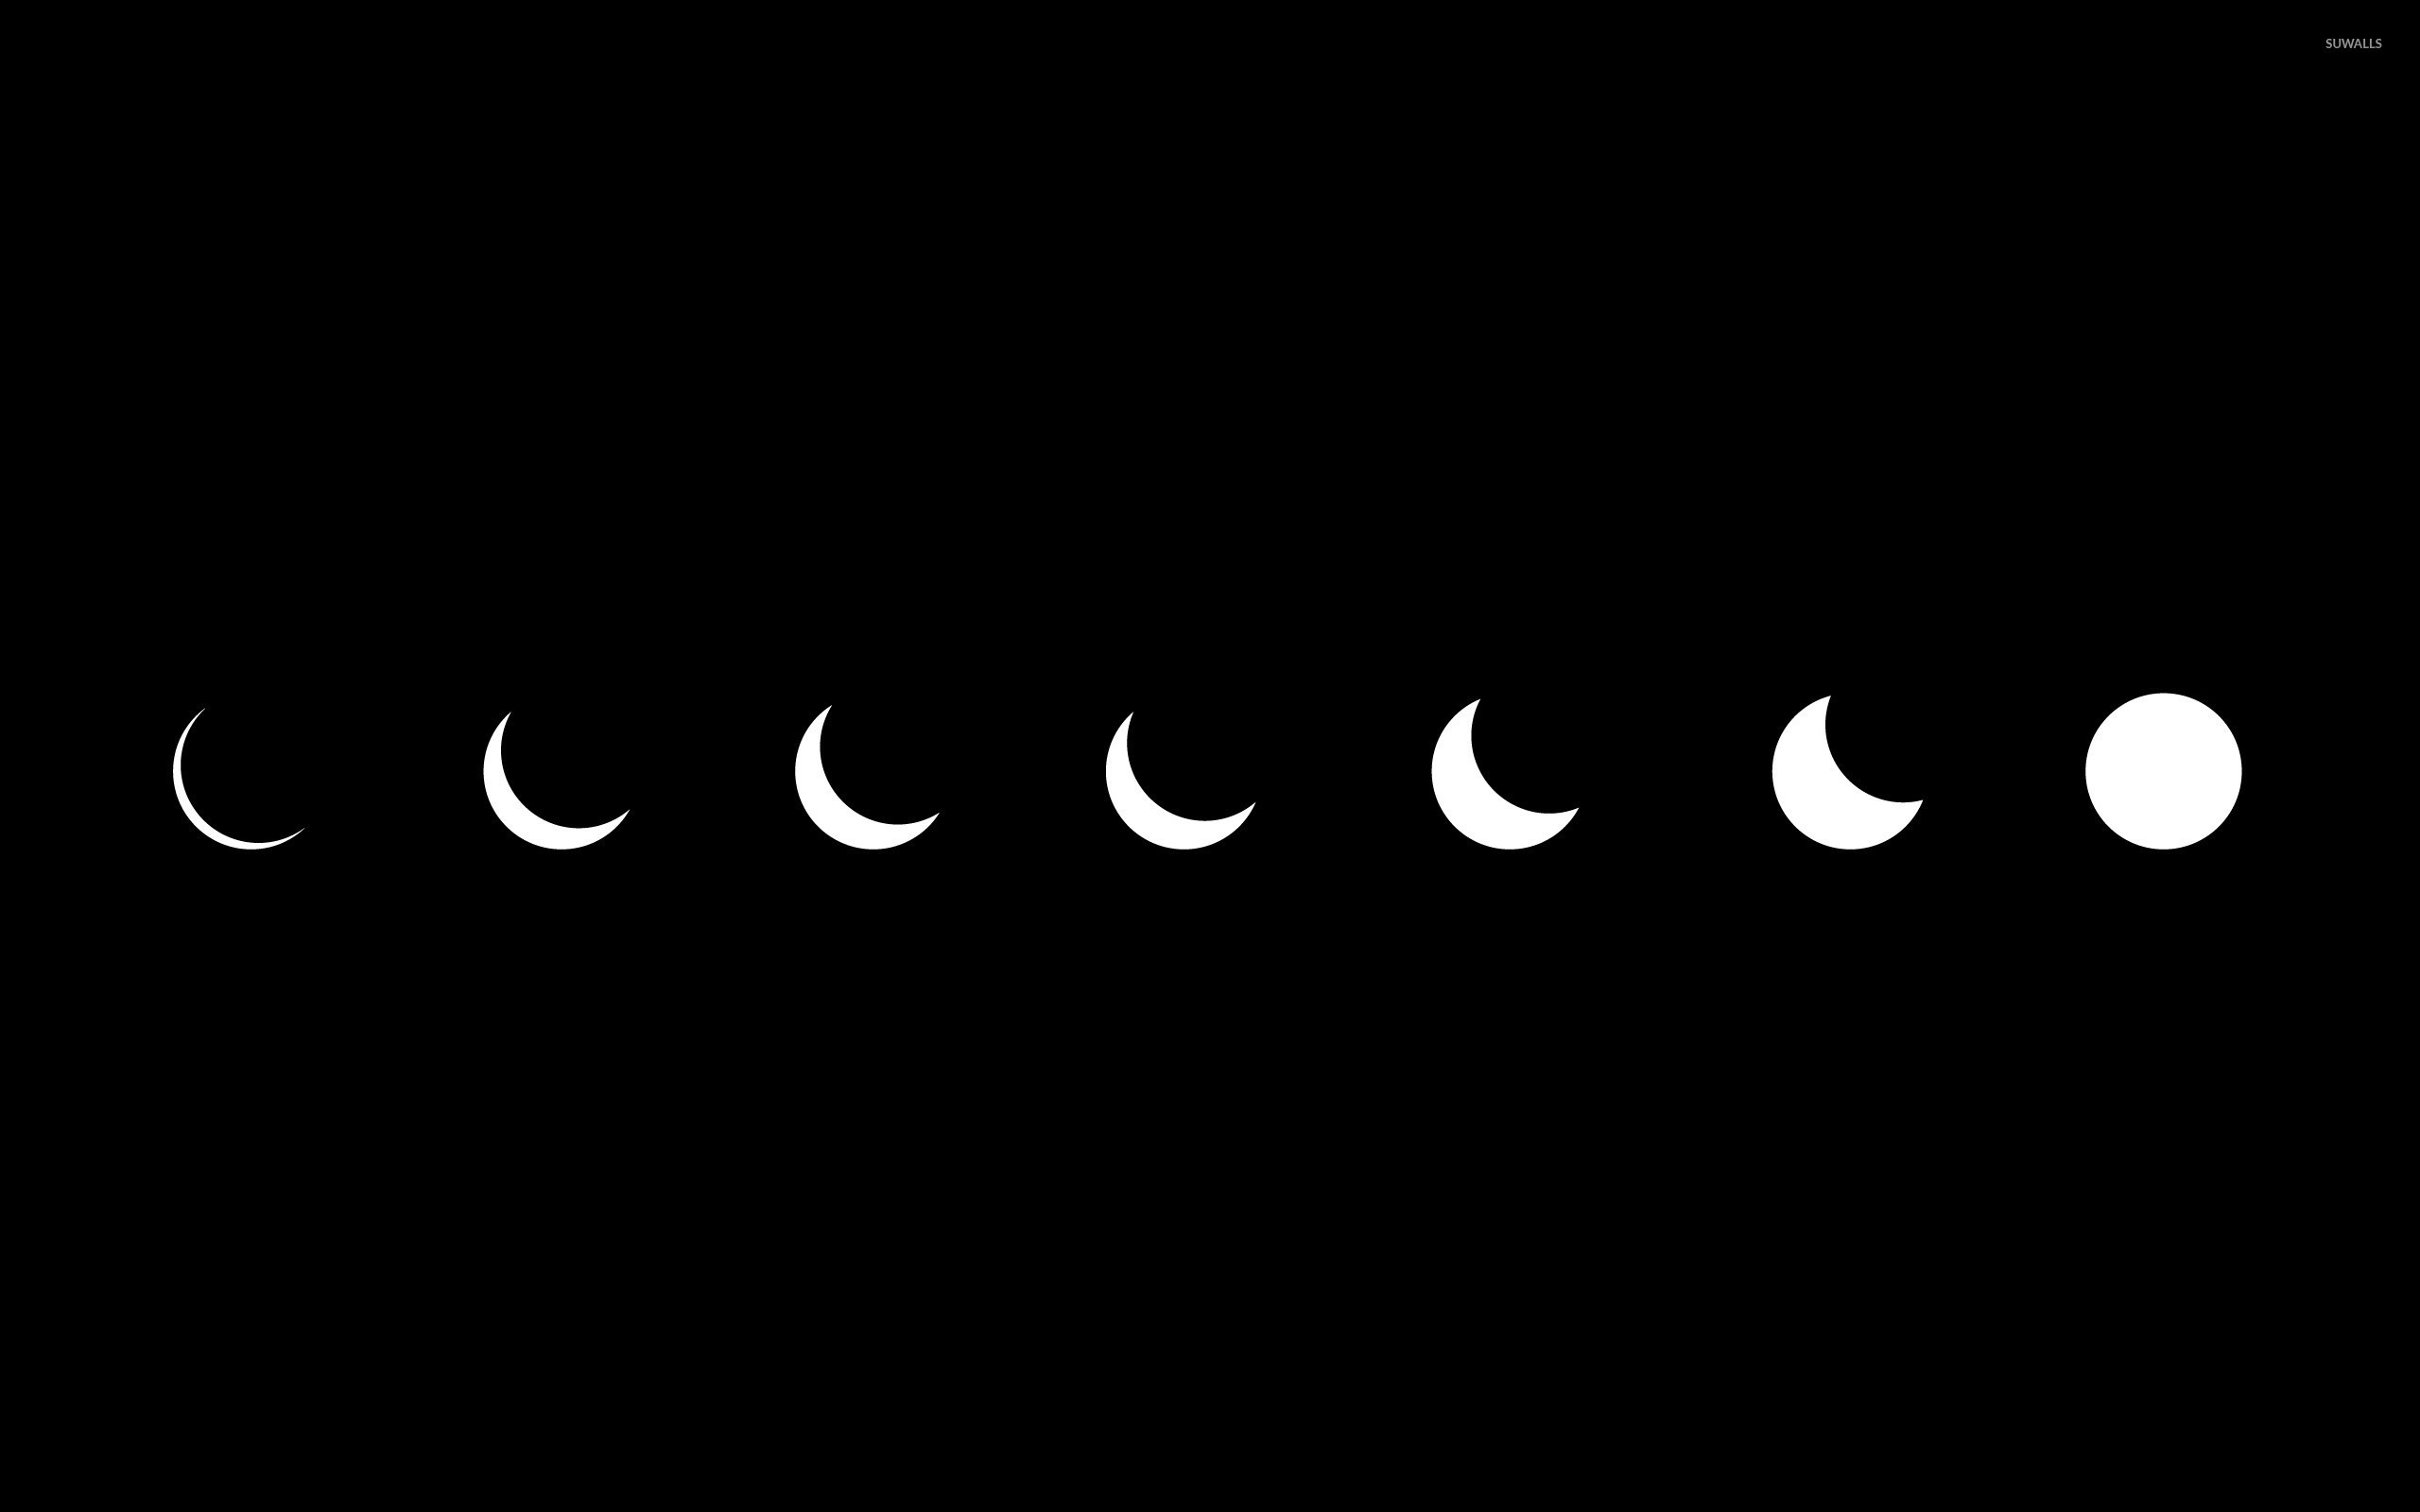 Phases Of The Moon Wallpaper 58 Images